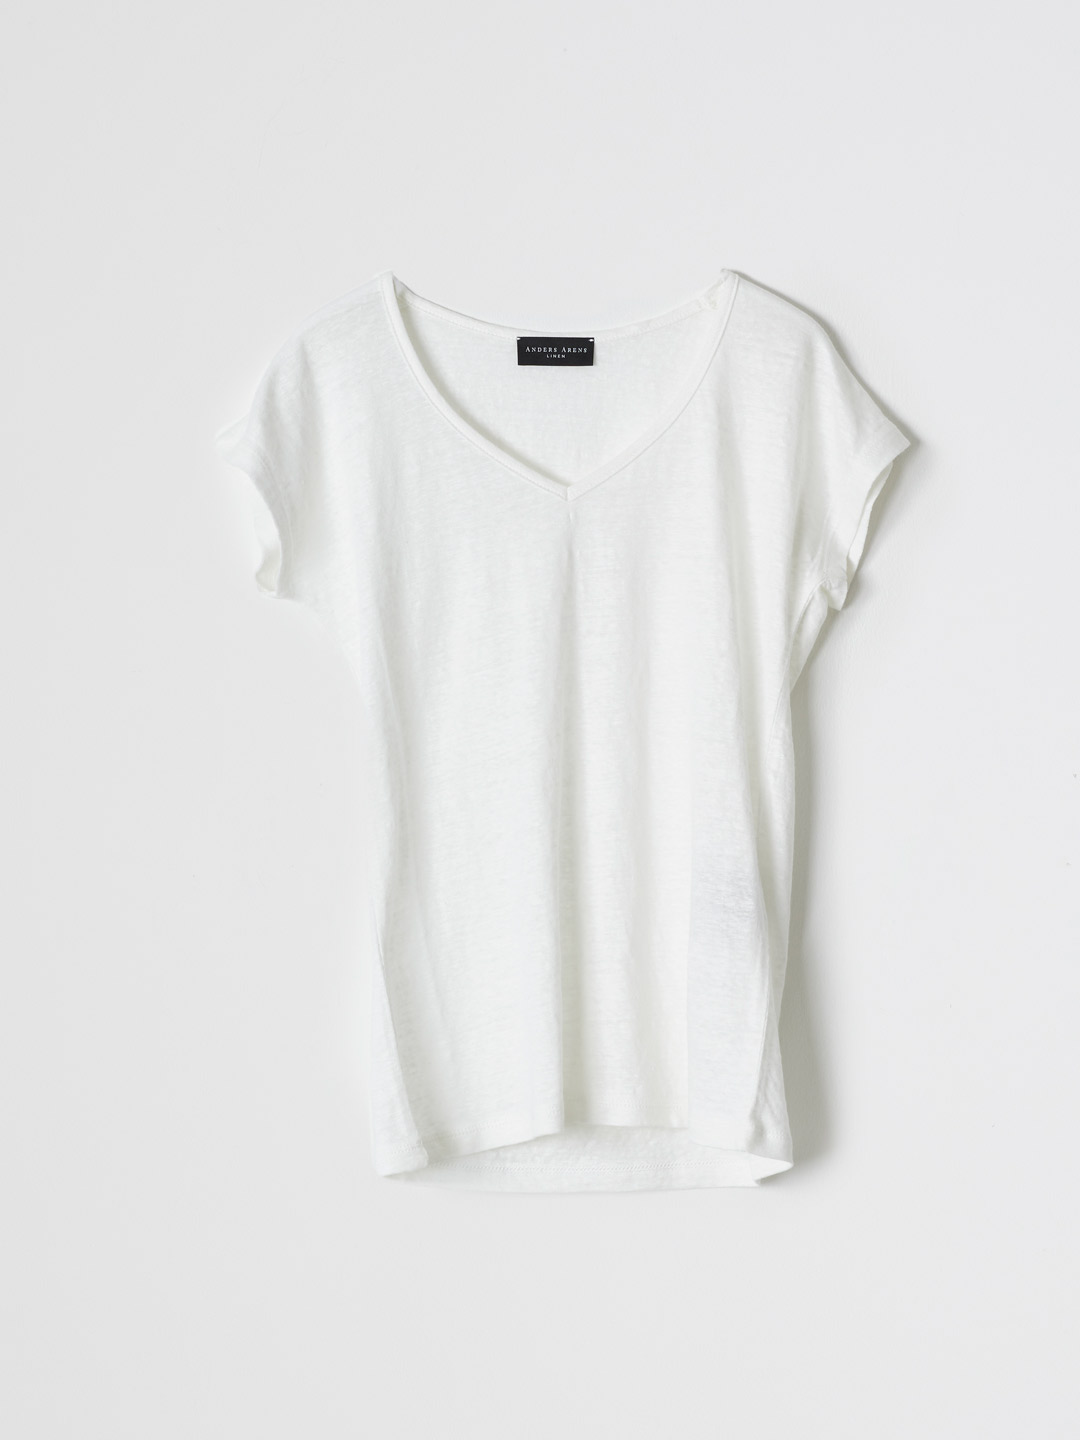 DUNES Short Sleeve V Neck T-shirt - White